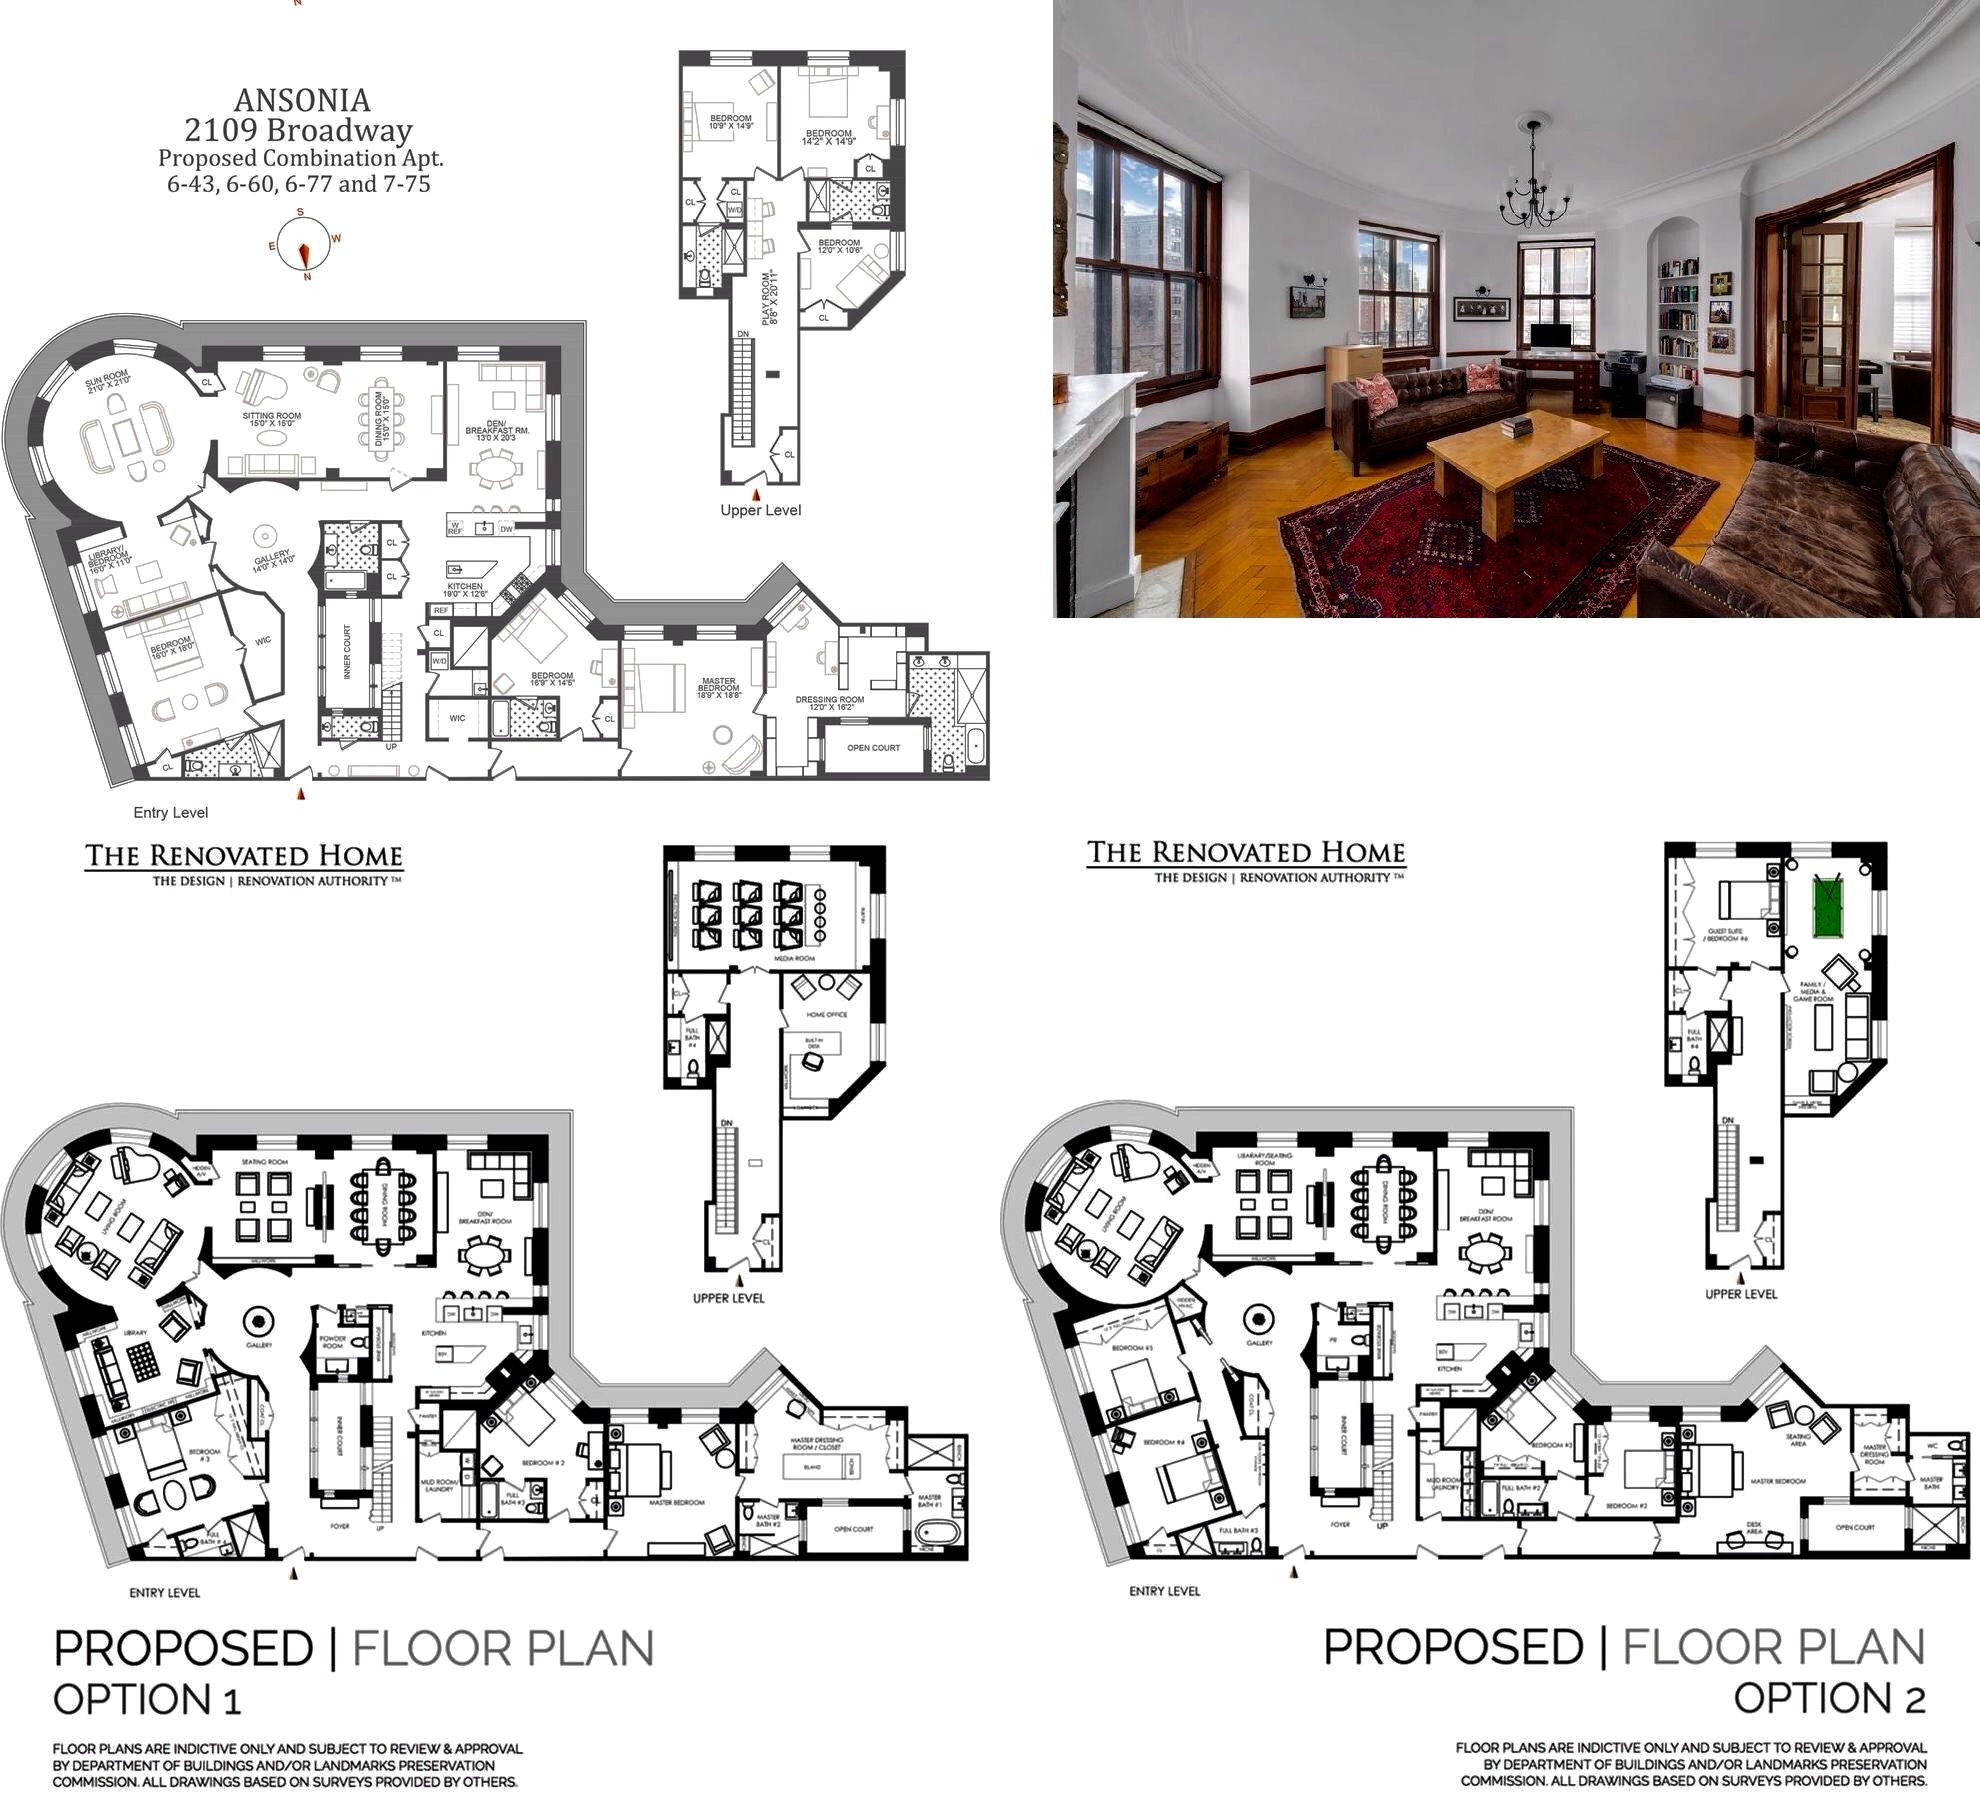 2109 Broadway 6 60 New York Ny 10023 Sales Floorplans Property Records Realtyhop Floor Plans House Plans Apartment Plans